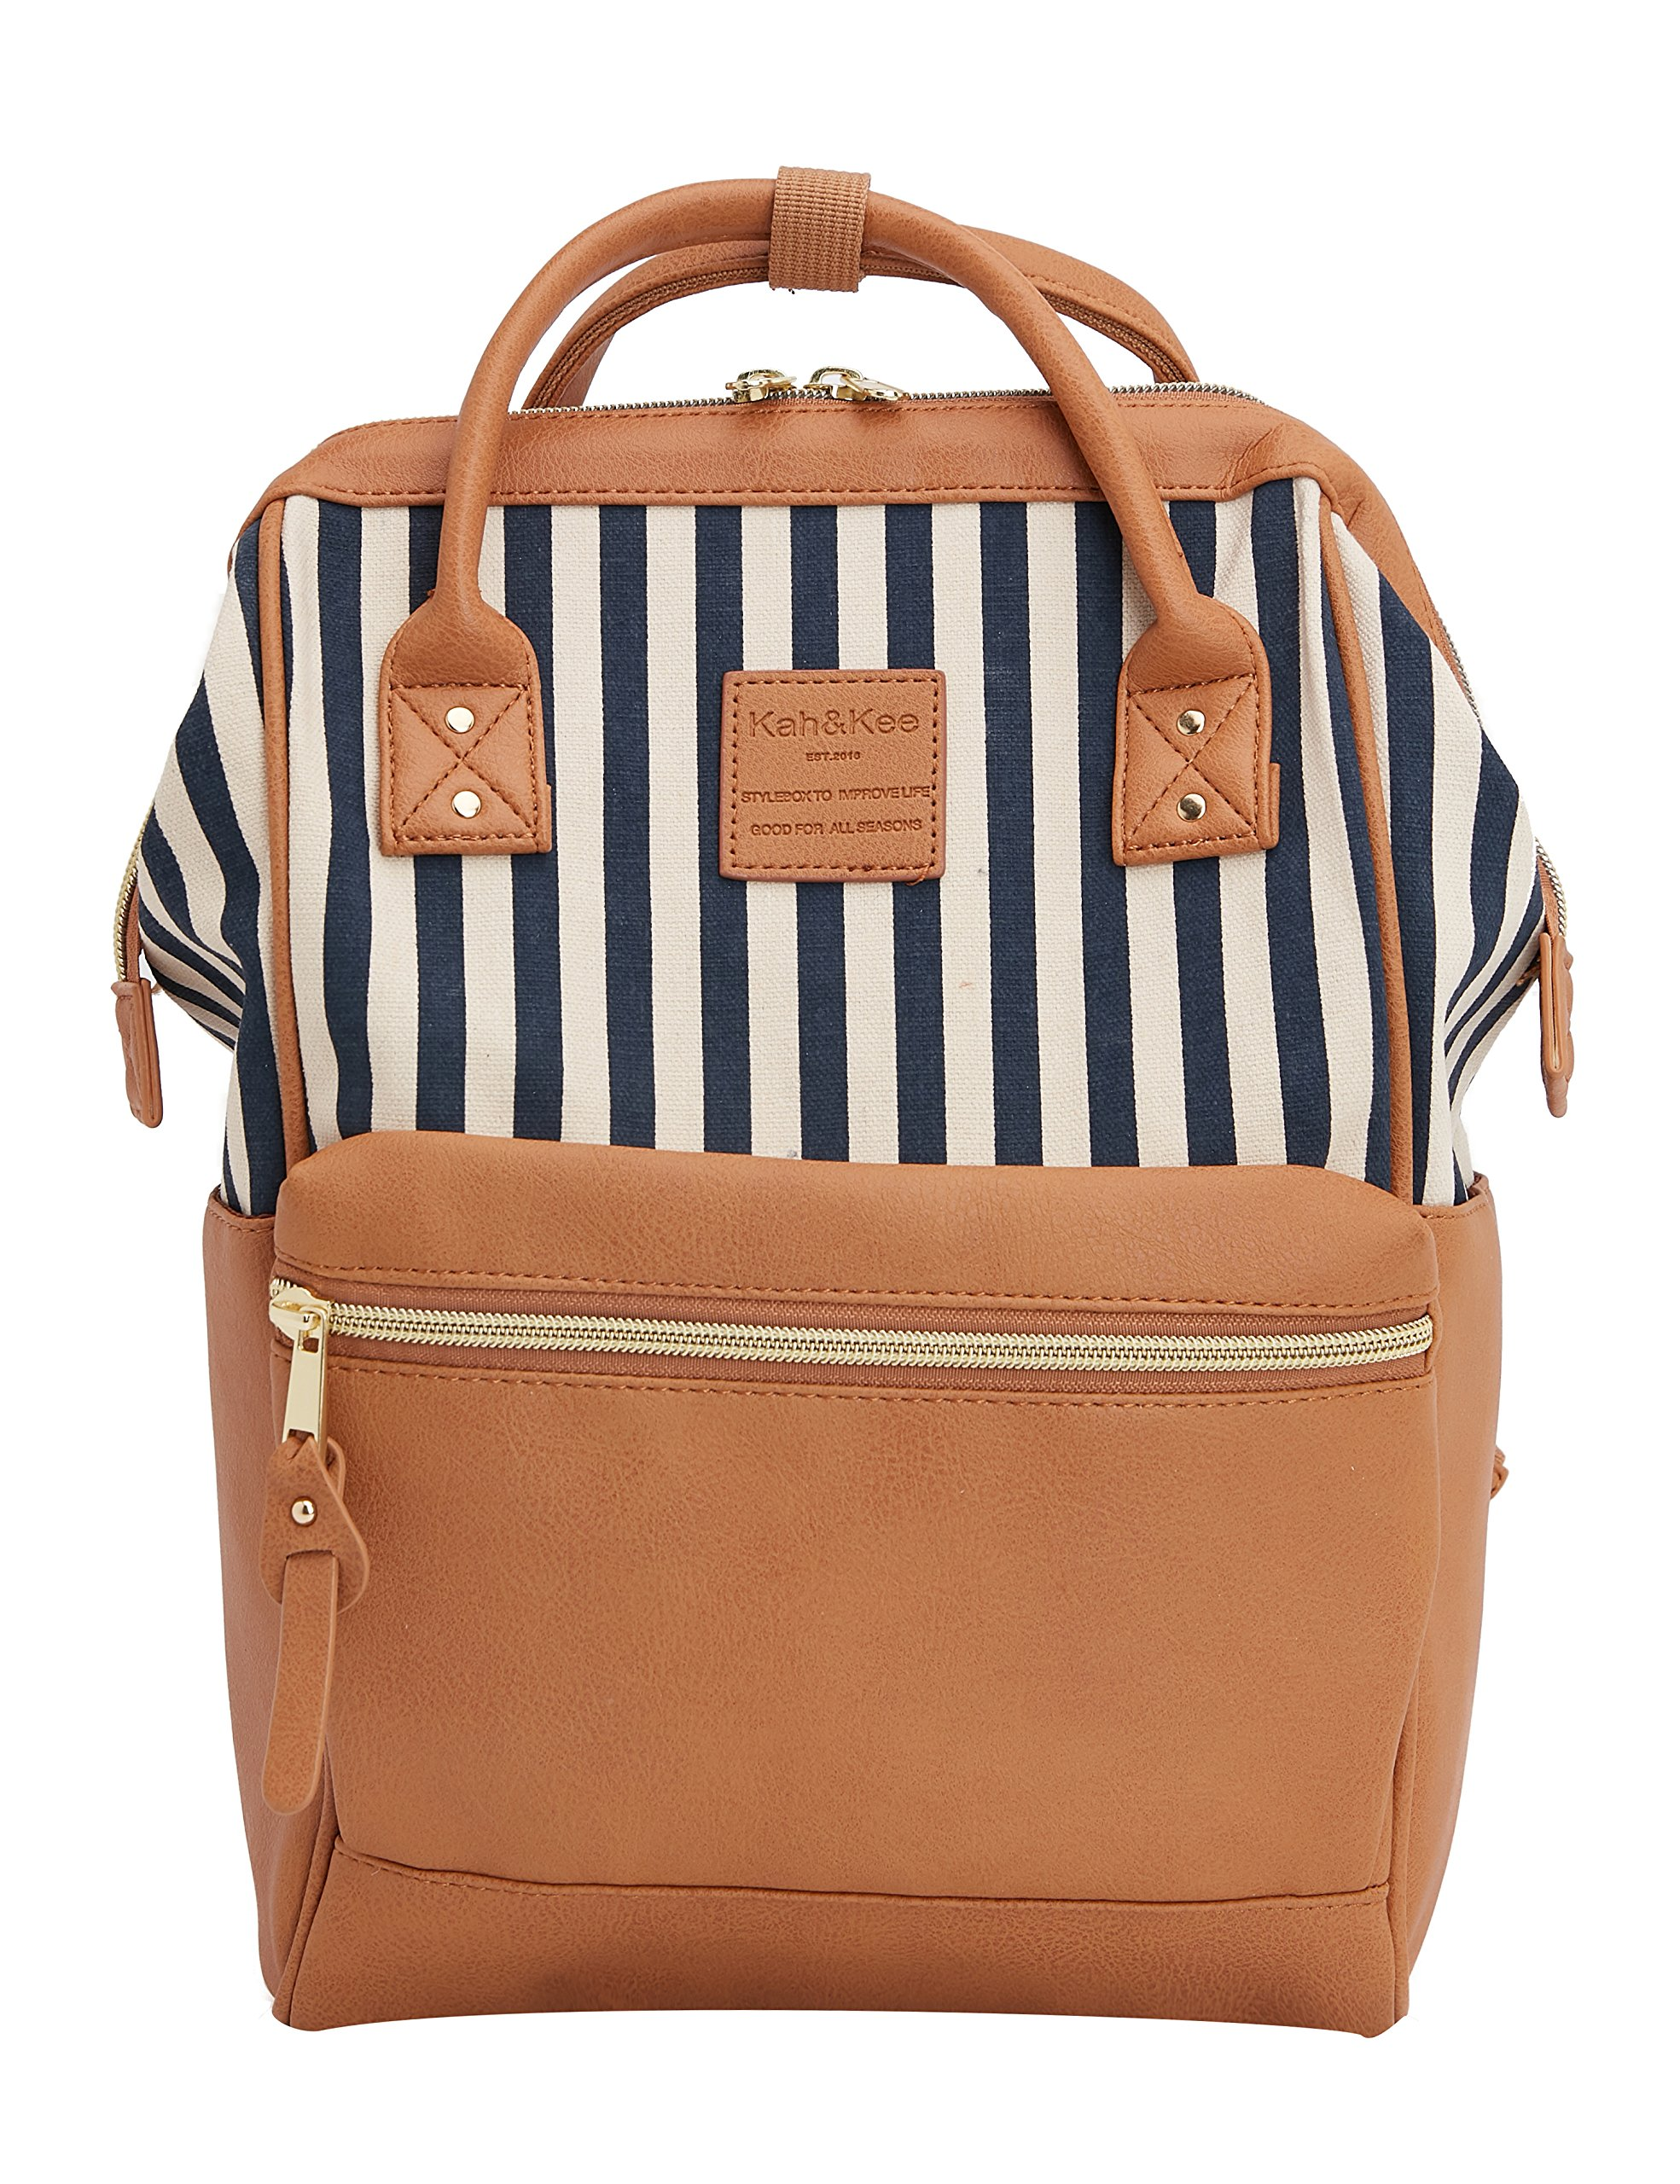 Kah&Kee Travel Backpack Casual Daypack Splice Bag for Women Man Small (Stripe/Camel)